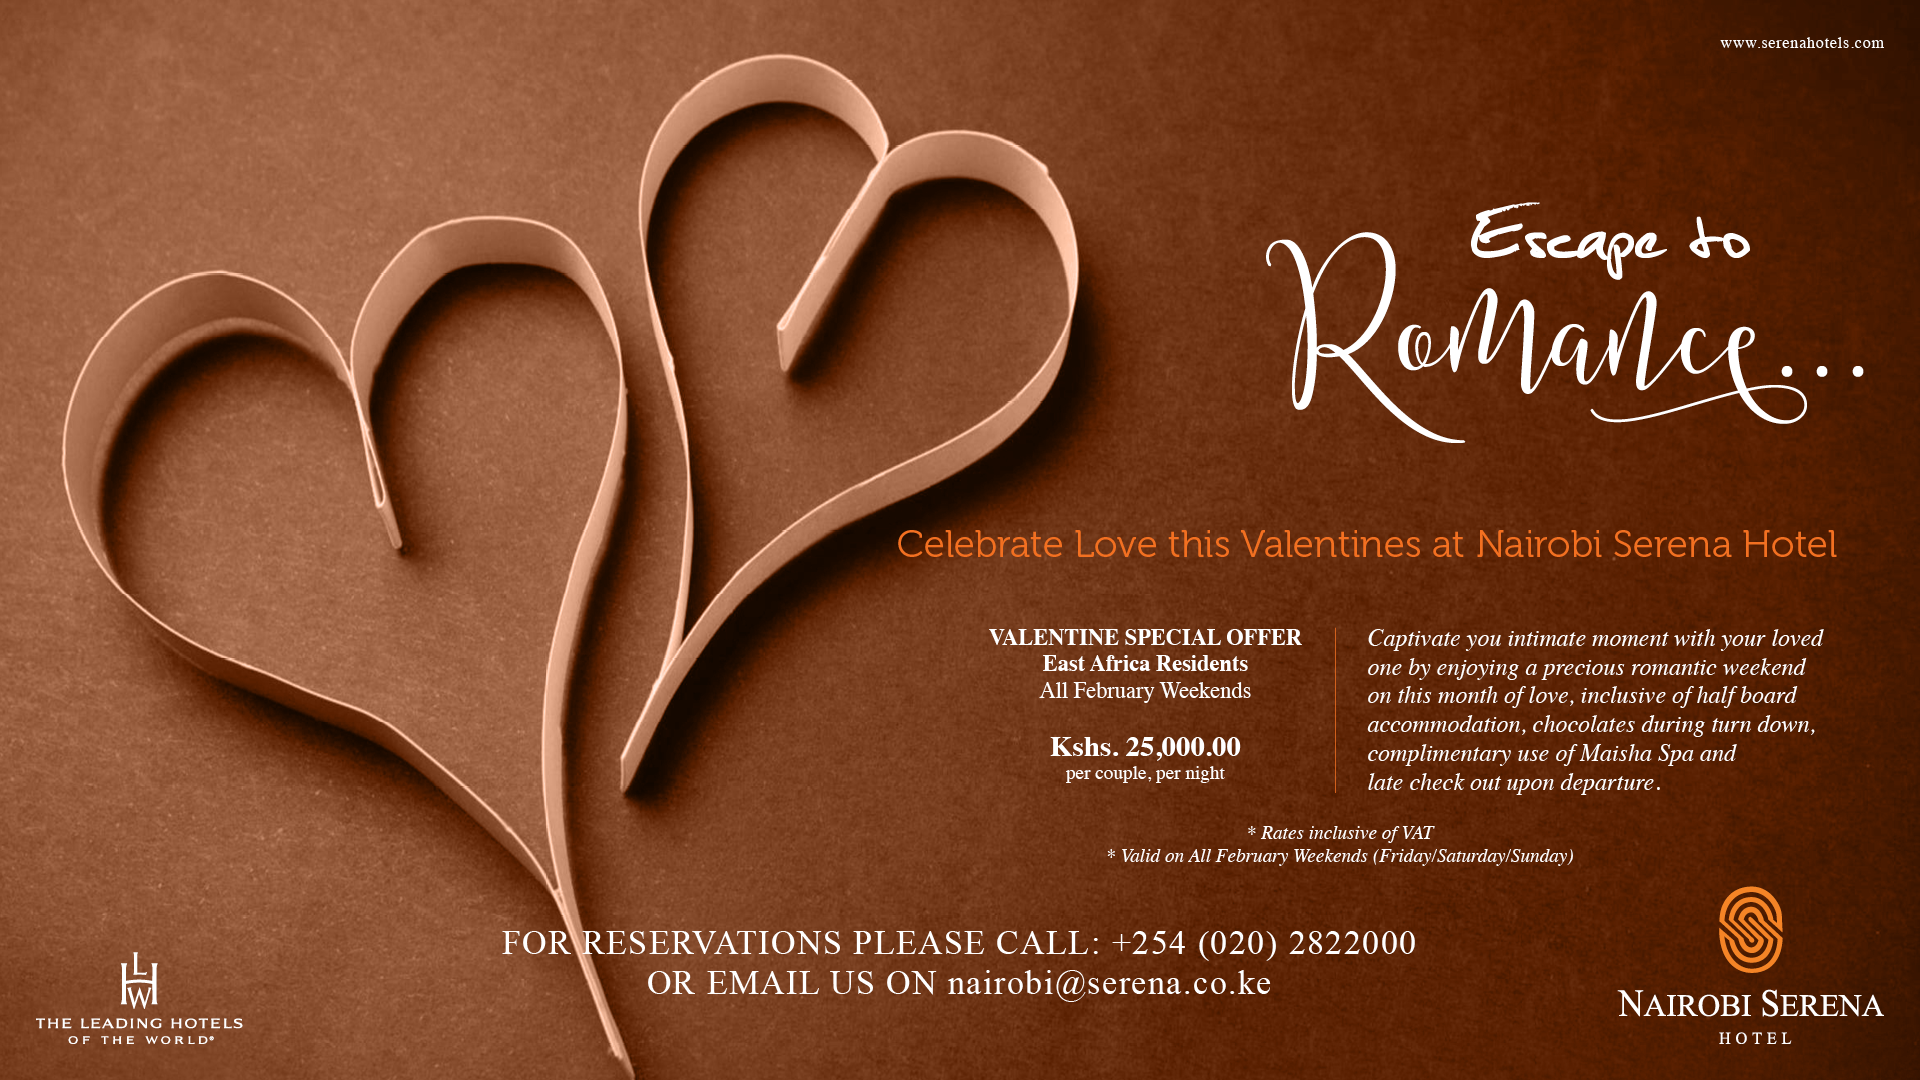 Escape to the Nairobi Serena for a Romantic Weekend all February